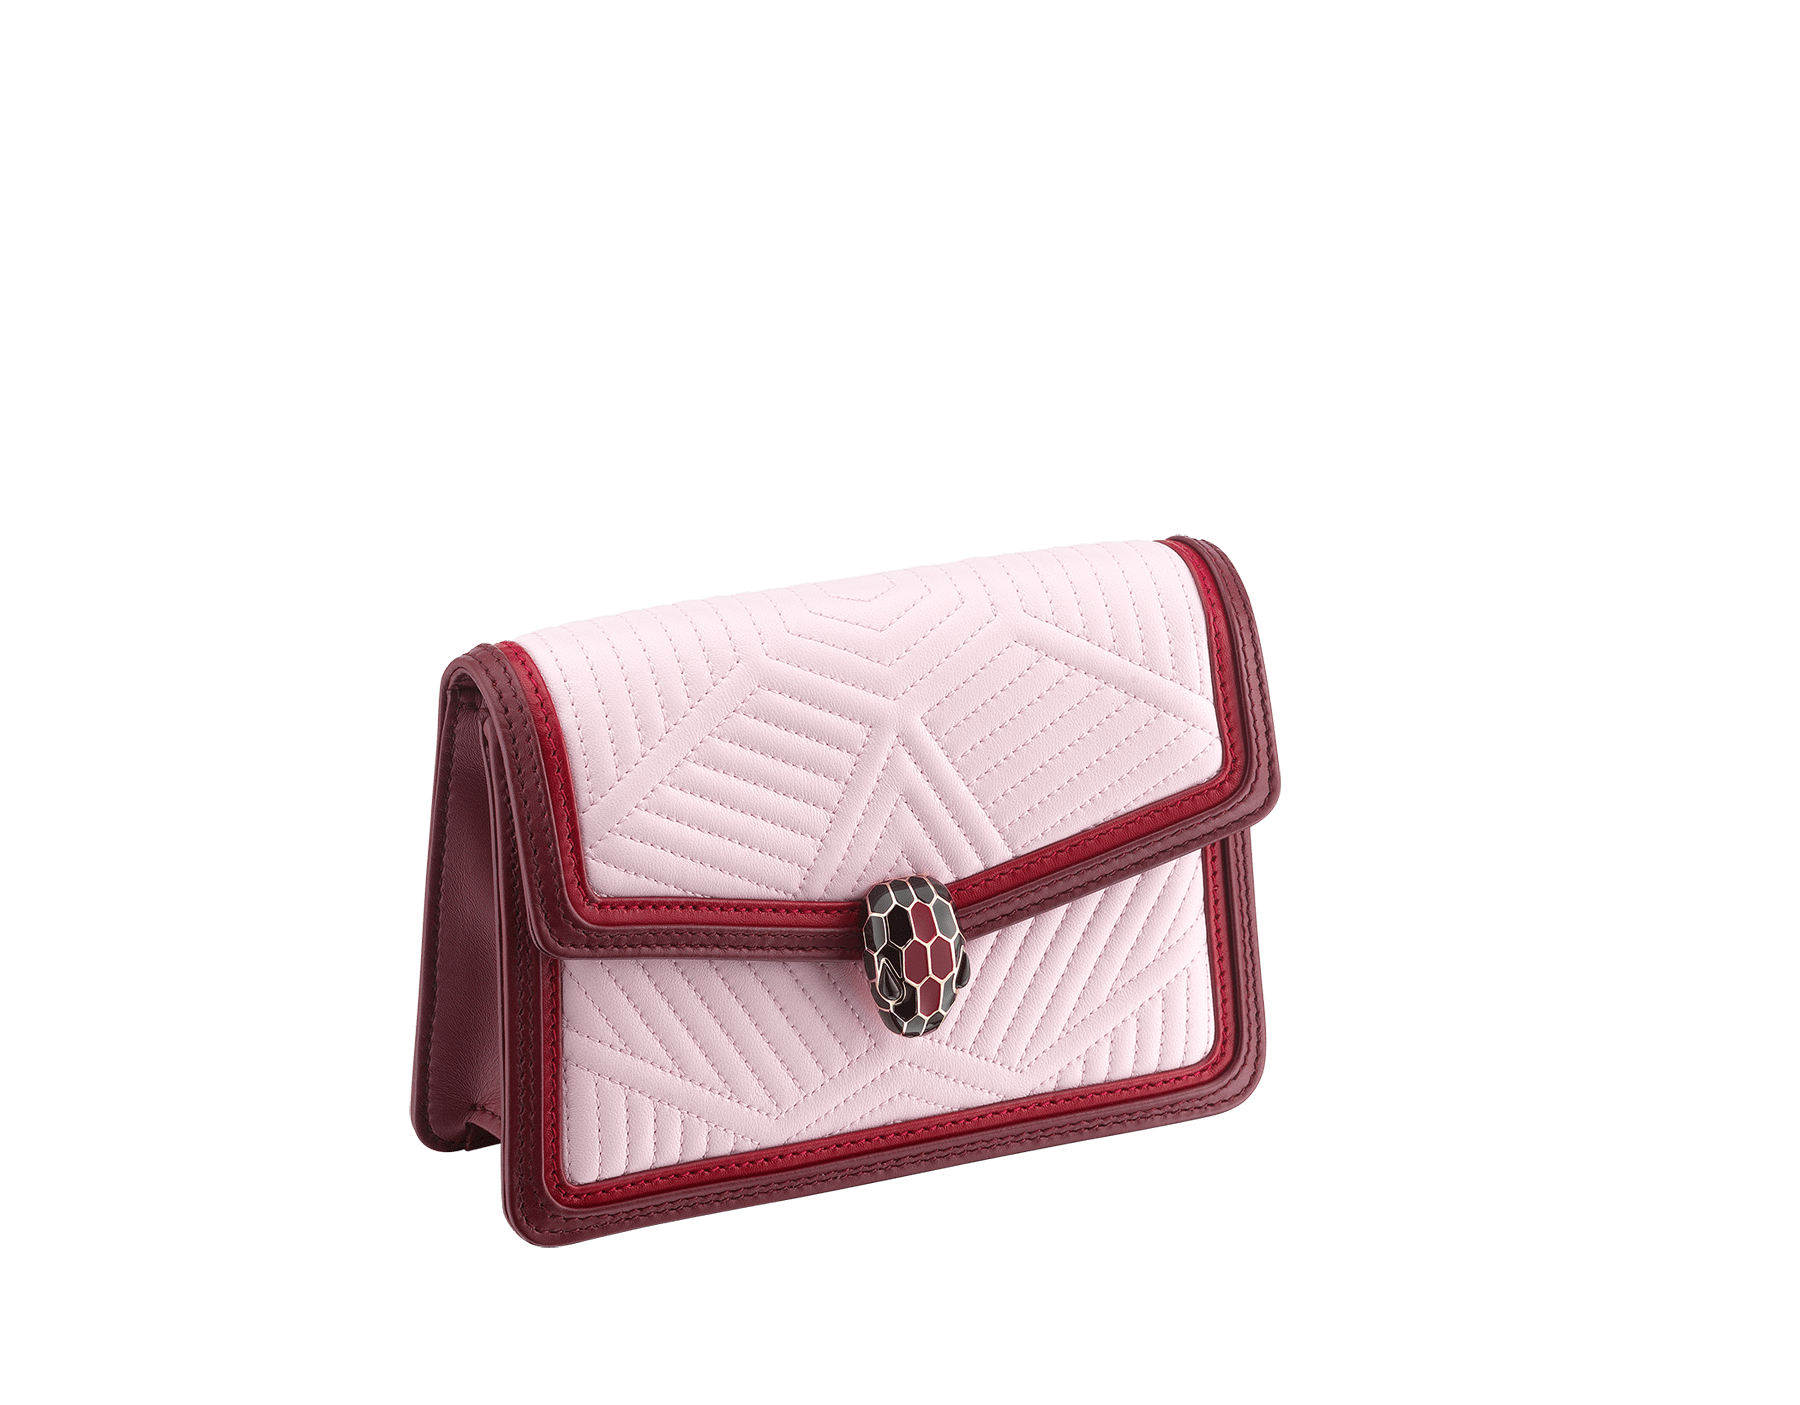 """Serpenti Diamond Blast"" crossbody micro bag in rosa di francia quilted nappa leather body and Roman garnet calf leather frames. Iconic snakehead closure in light gold plated brass enriched with black and ruby red enamel and black onyx eyes. 288844 image 2"